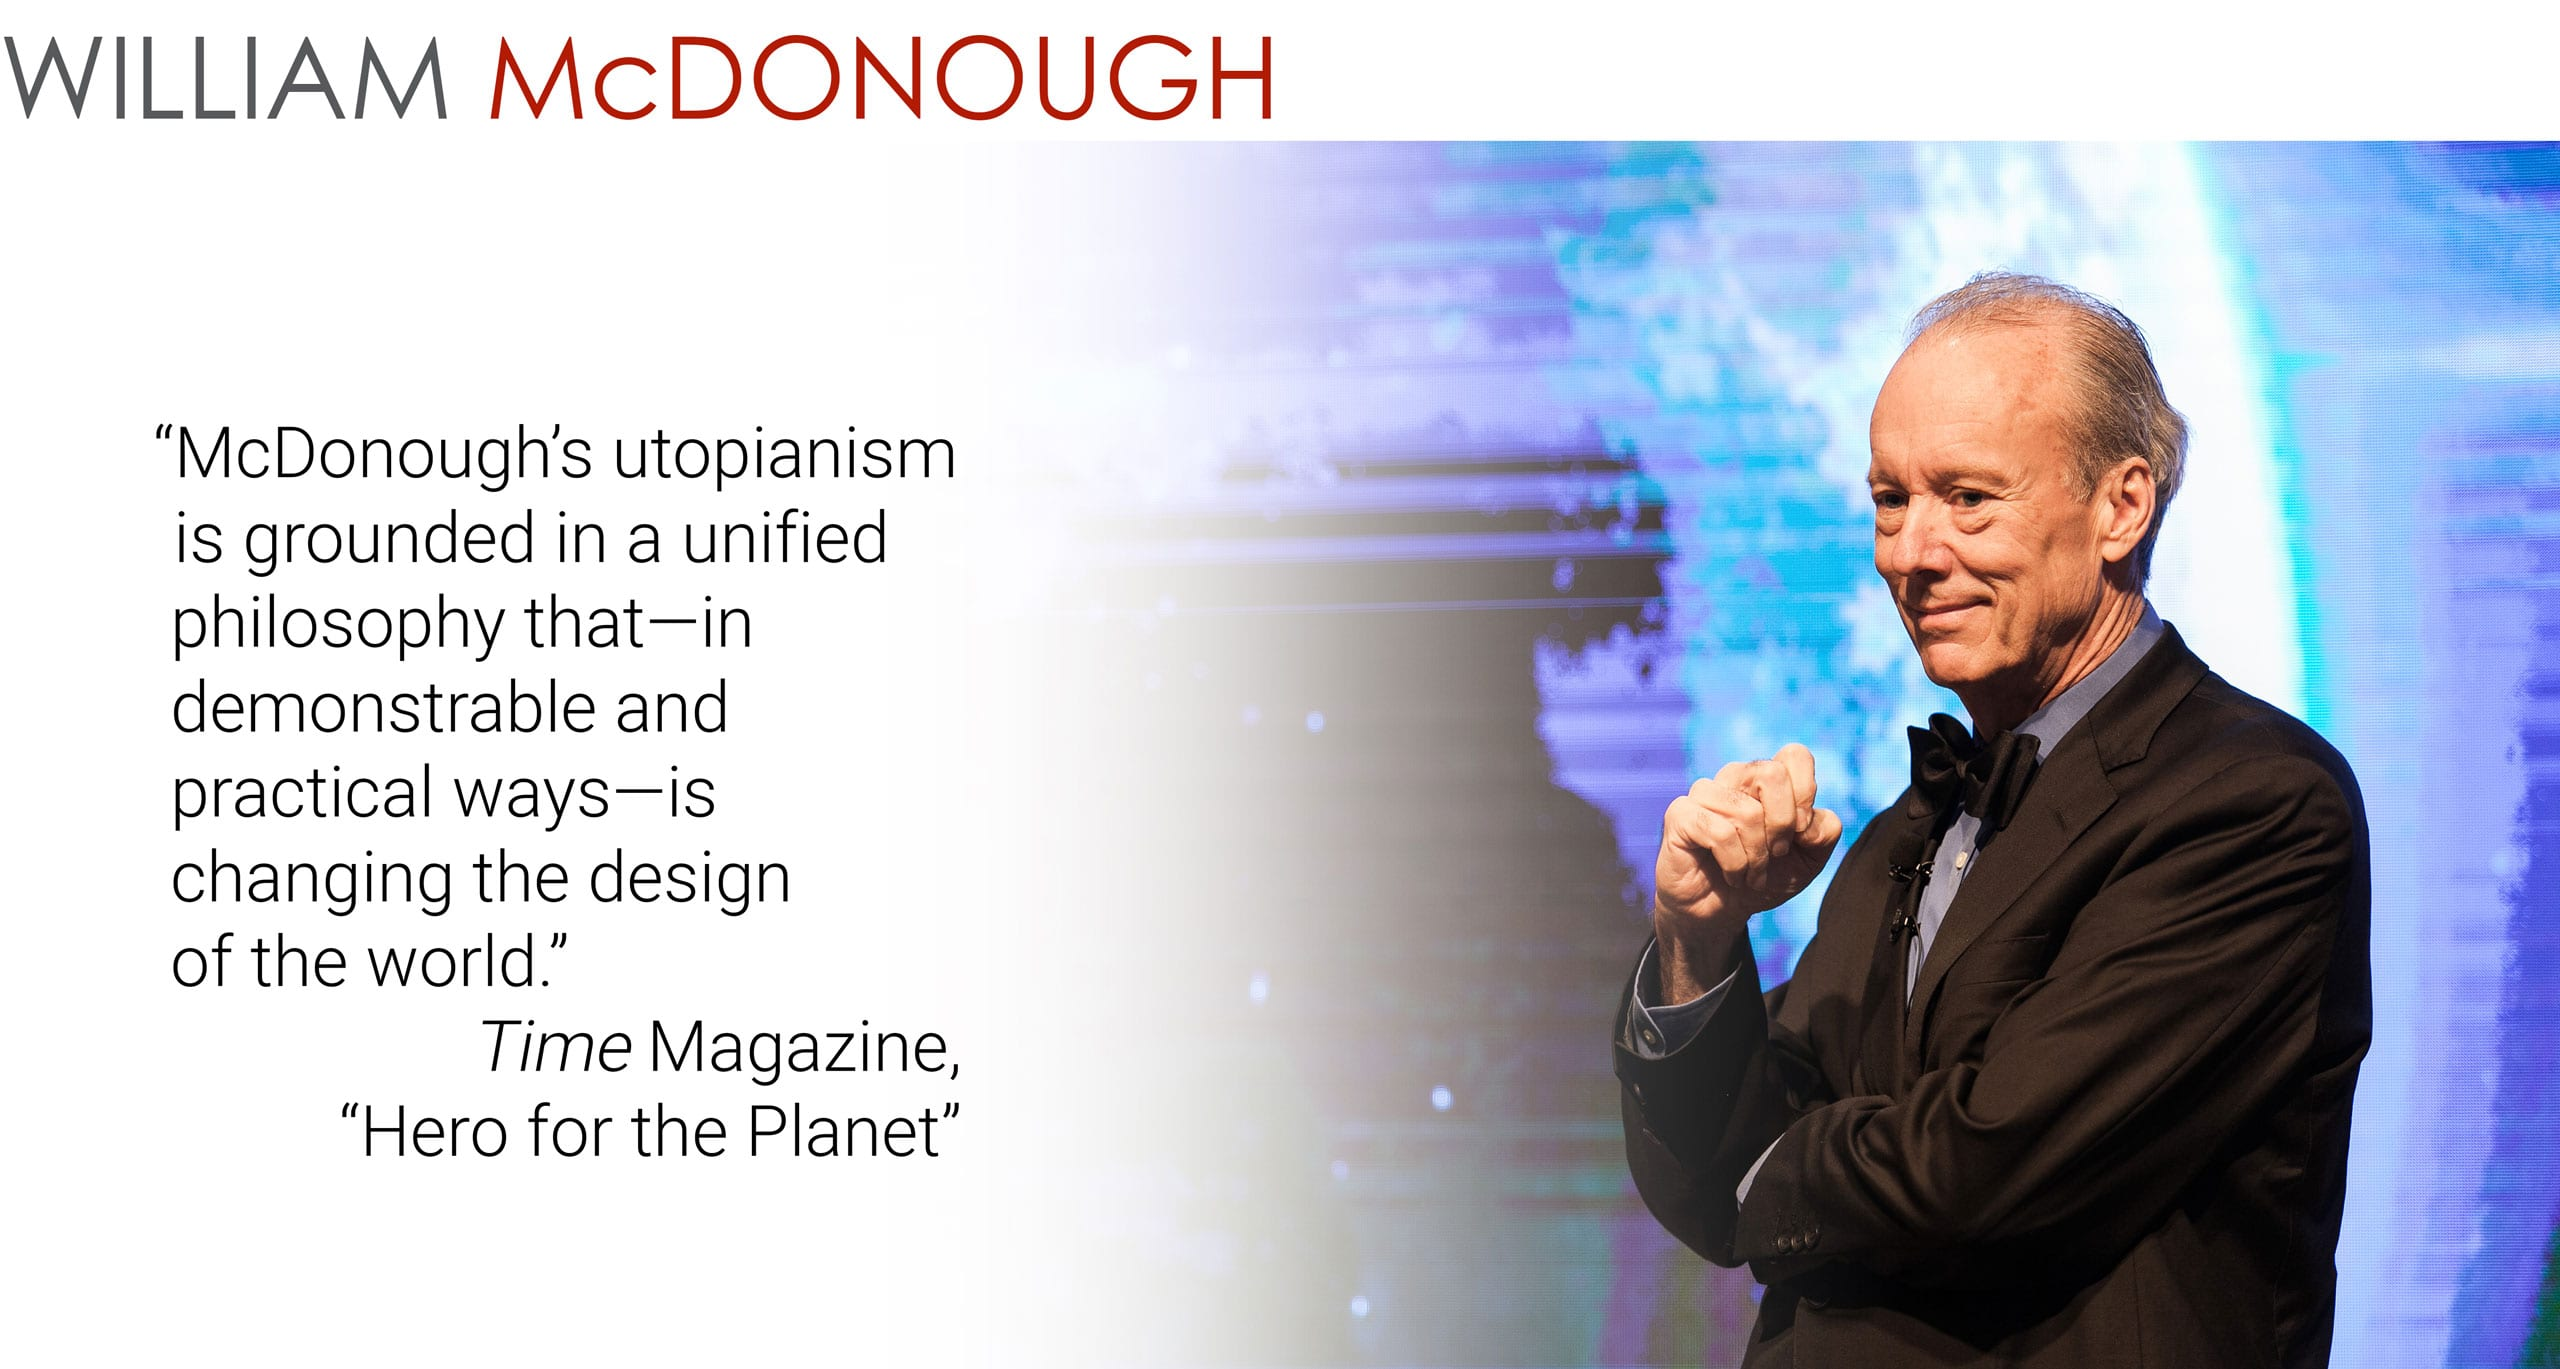 Welcome to the world of William McDonough